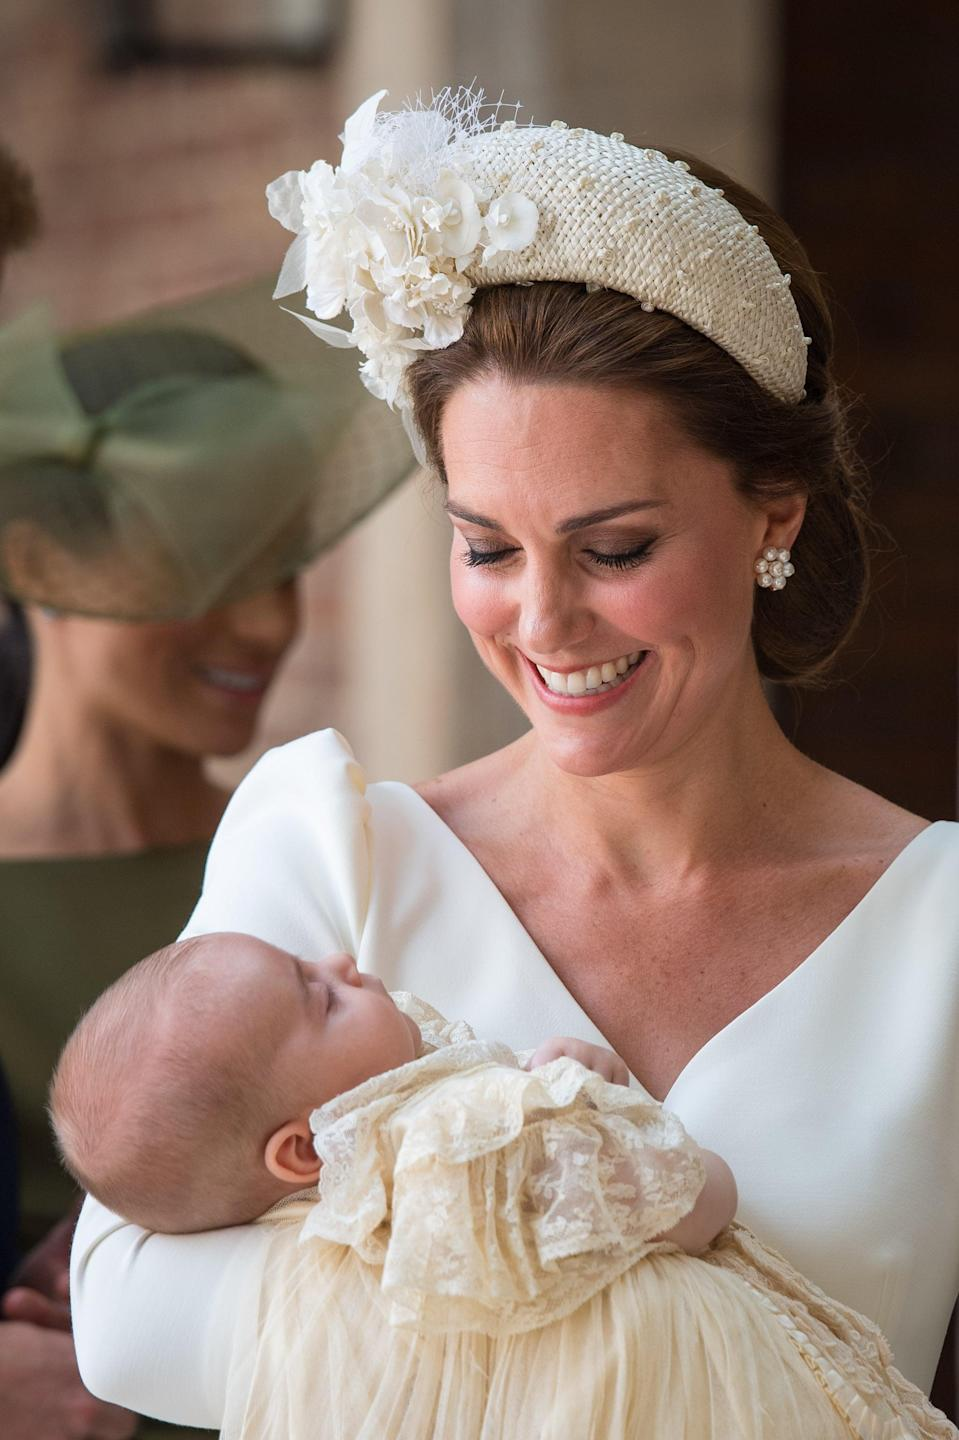 "<p><a href=""https://www.popsugar.com/celebrity/Prince-Louis-Christening-Photos-45011790"" class=""link rapid-noclick-resp"" rel=""nofollow noopener"" target=""_blank"" data-ylk=""slk:Prince Louis's christening"">Prince Louis's christening</a> was the perfect occasion for the duchess to breakout a bespoke headband designed from <a href=""https://www.janetaylorlondon.com/category/hat-style/headbands/?swoof=1&pa_material=beaded&really_curr_tax=426-product_cat"" class=""link rapid-noclick-resp"" rel=""nofollow noopener"" target=""_blank"" data-ylk=""slk:Jane Taylor London"">Jane Taylor London</a>. And as usual, the duchess styled her hair in a low chignon/loop, which acts as both an anchor for the large accessory and a way to expose her beautiful earrings. </p>"